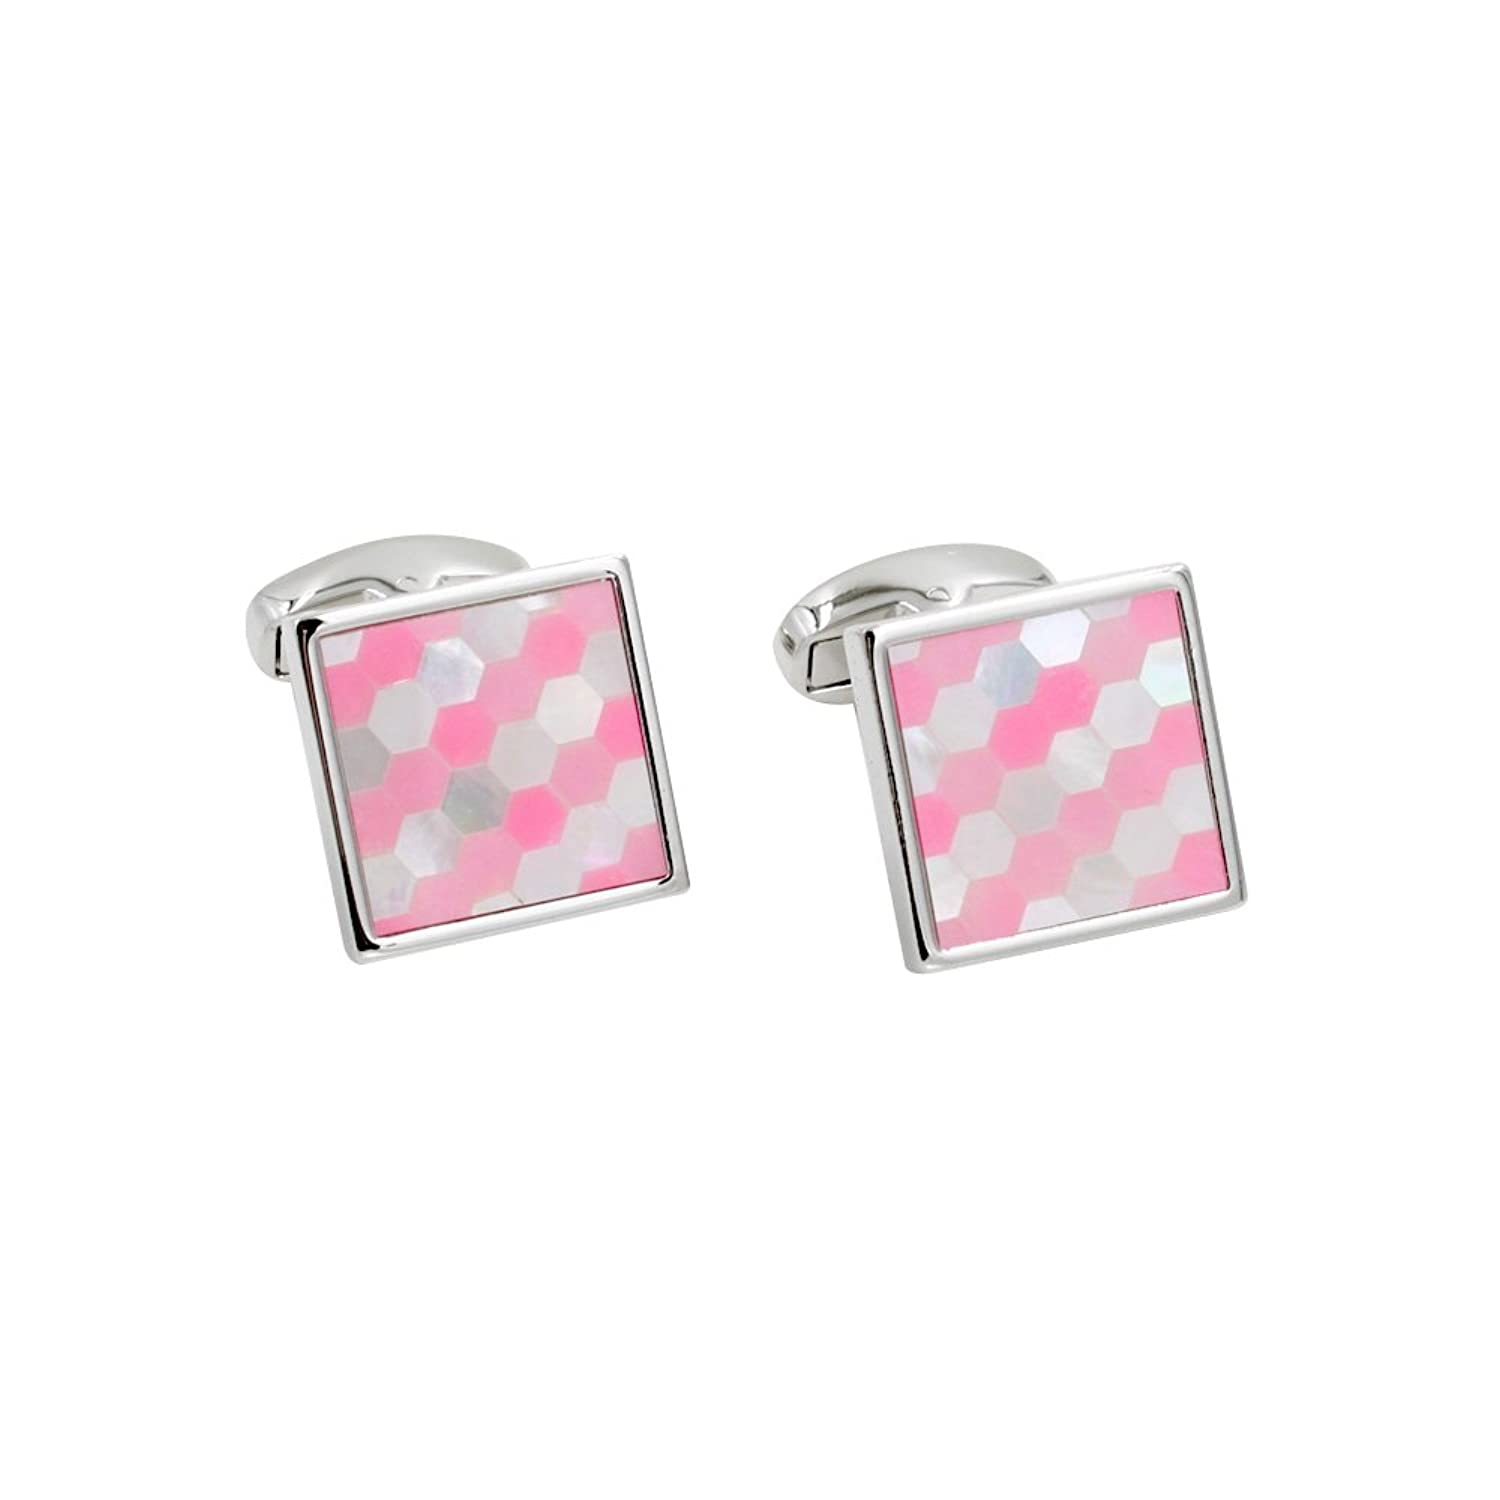 Mosaic Pink Cufflinks | 5 Yr Warranty | Cufflinks Box Inc | Premium Cuff Links | Mens Birthday Gift